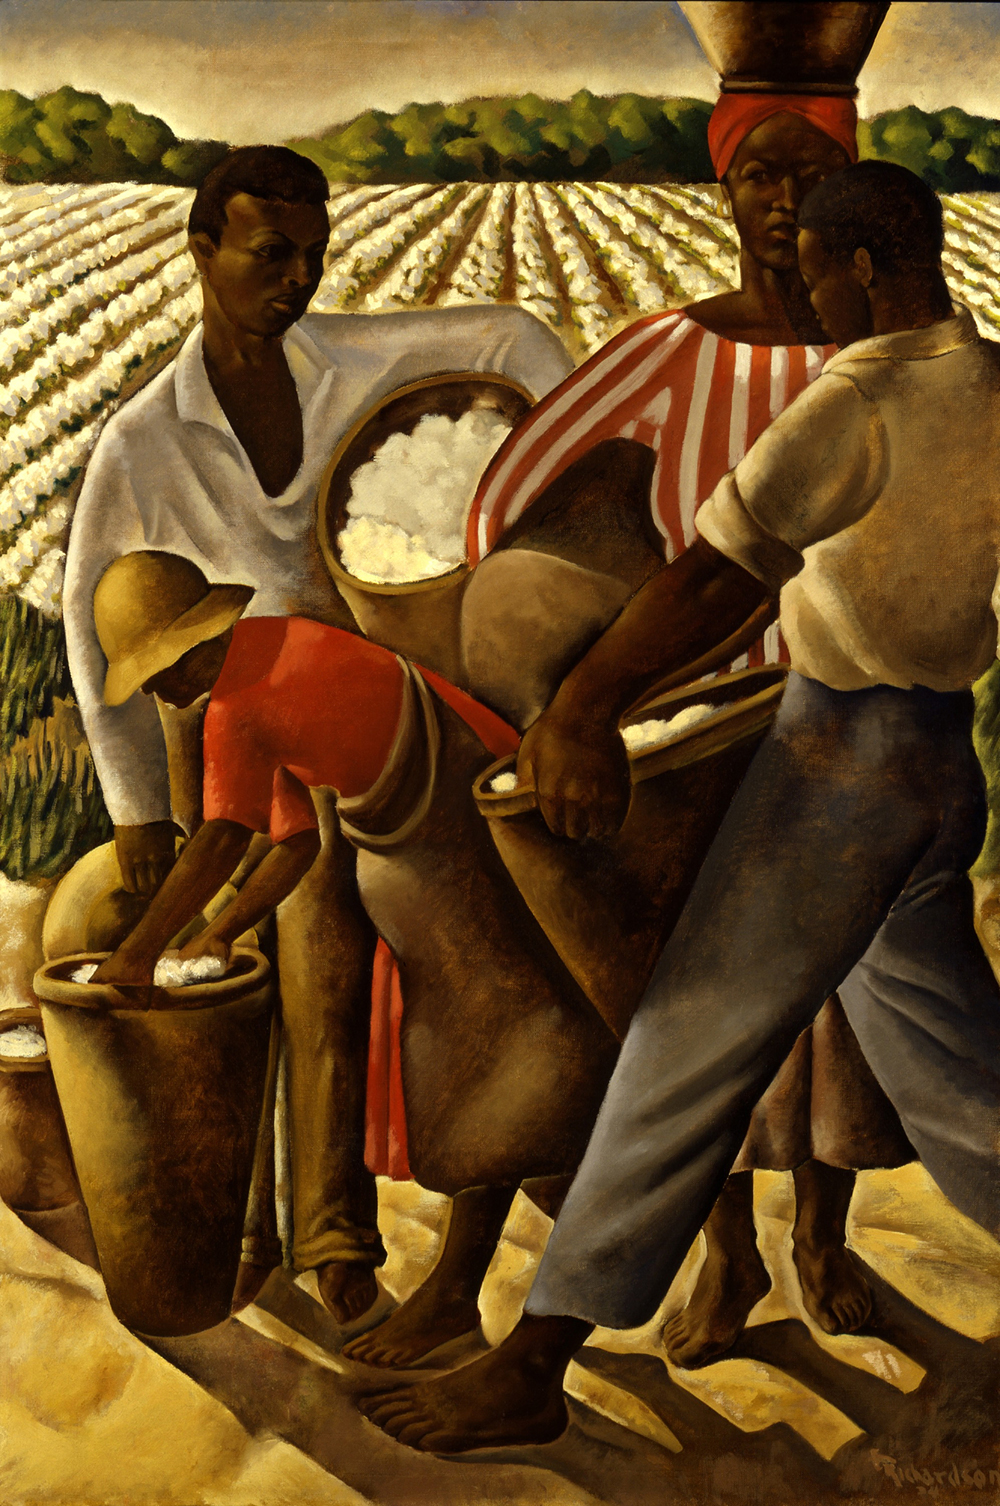 Employment of Negroes in Agriculture, by Earle Richardson, 1934. Smithsonian American Art Museum, Transfer from the U.S. Department of Labor, 1964.